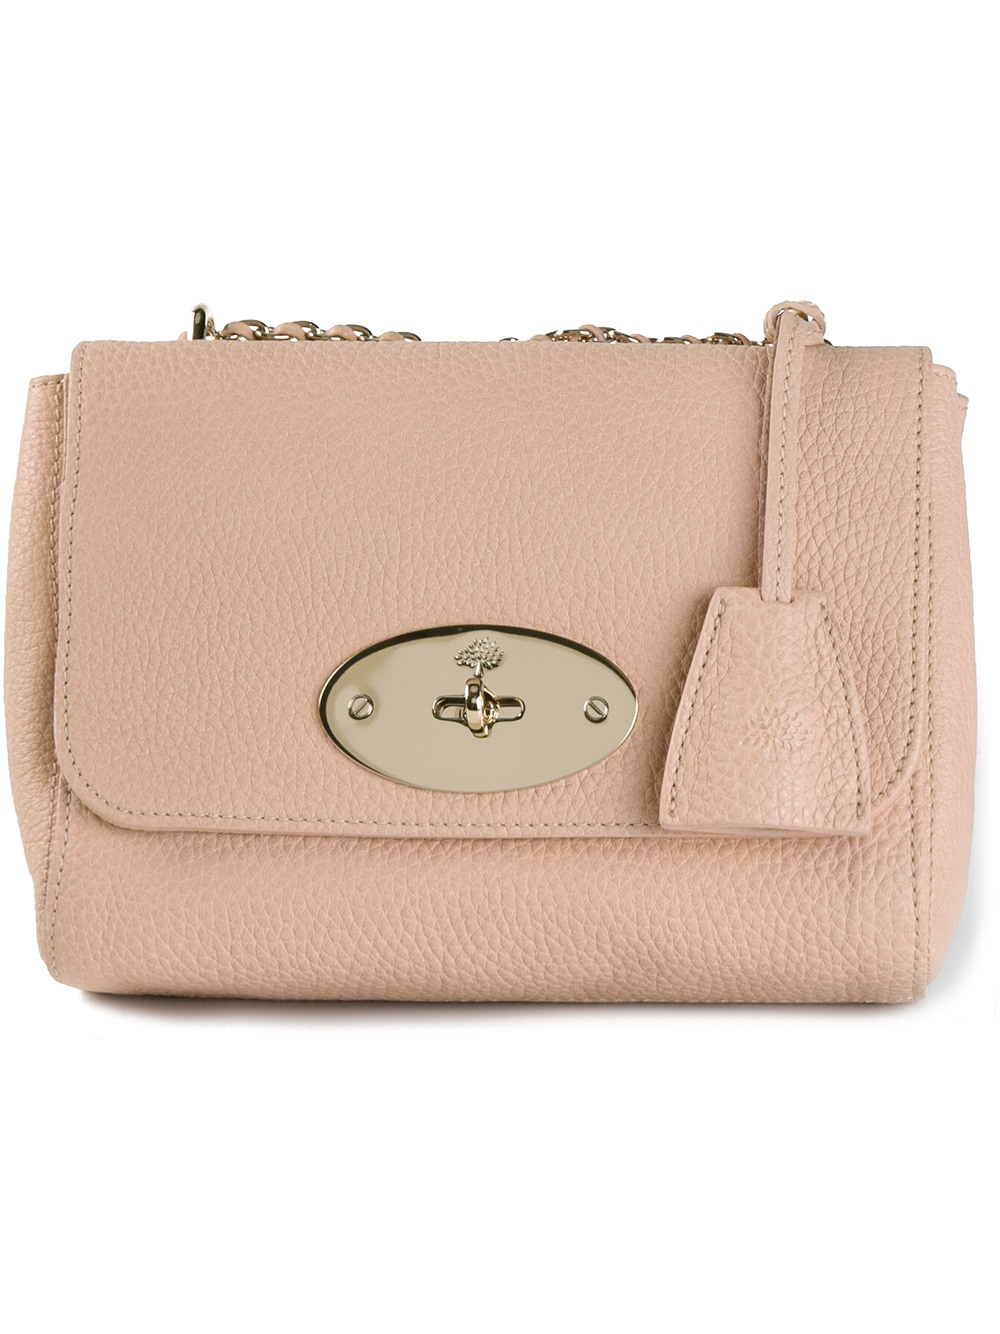 ... coupon lyst mulberry lily shoulder bag in pink 1bb98 c6cc5 ... 10b7c8d739bdd